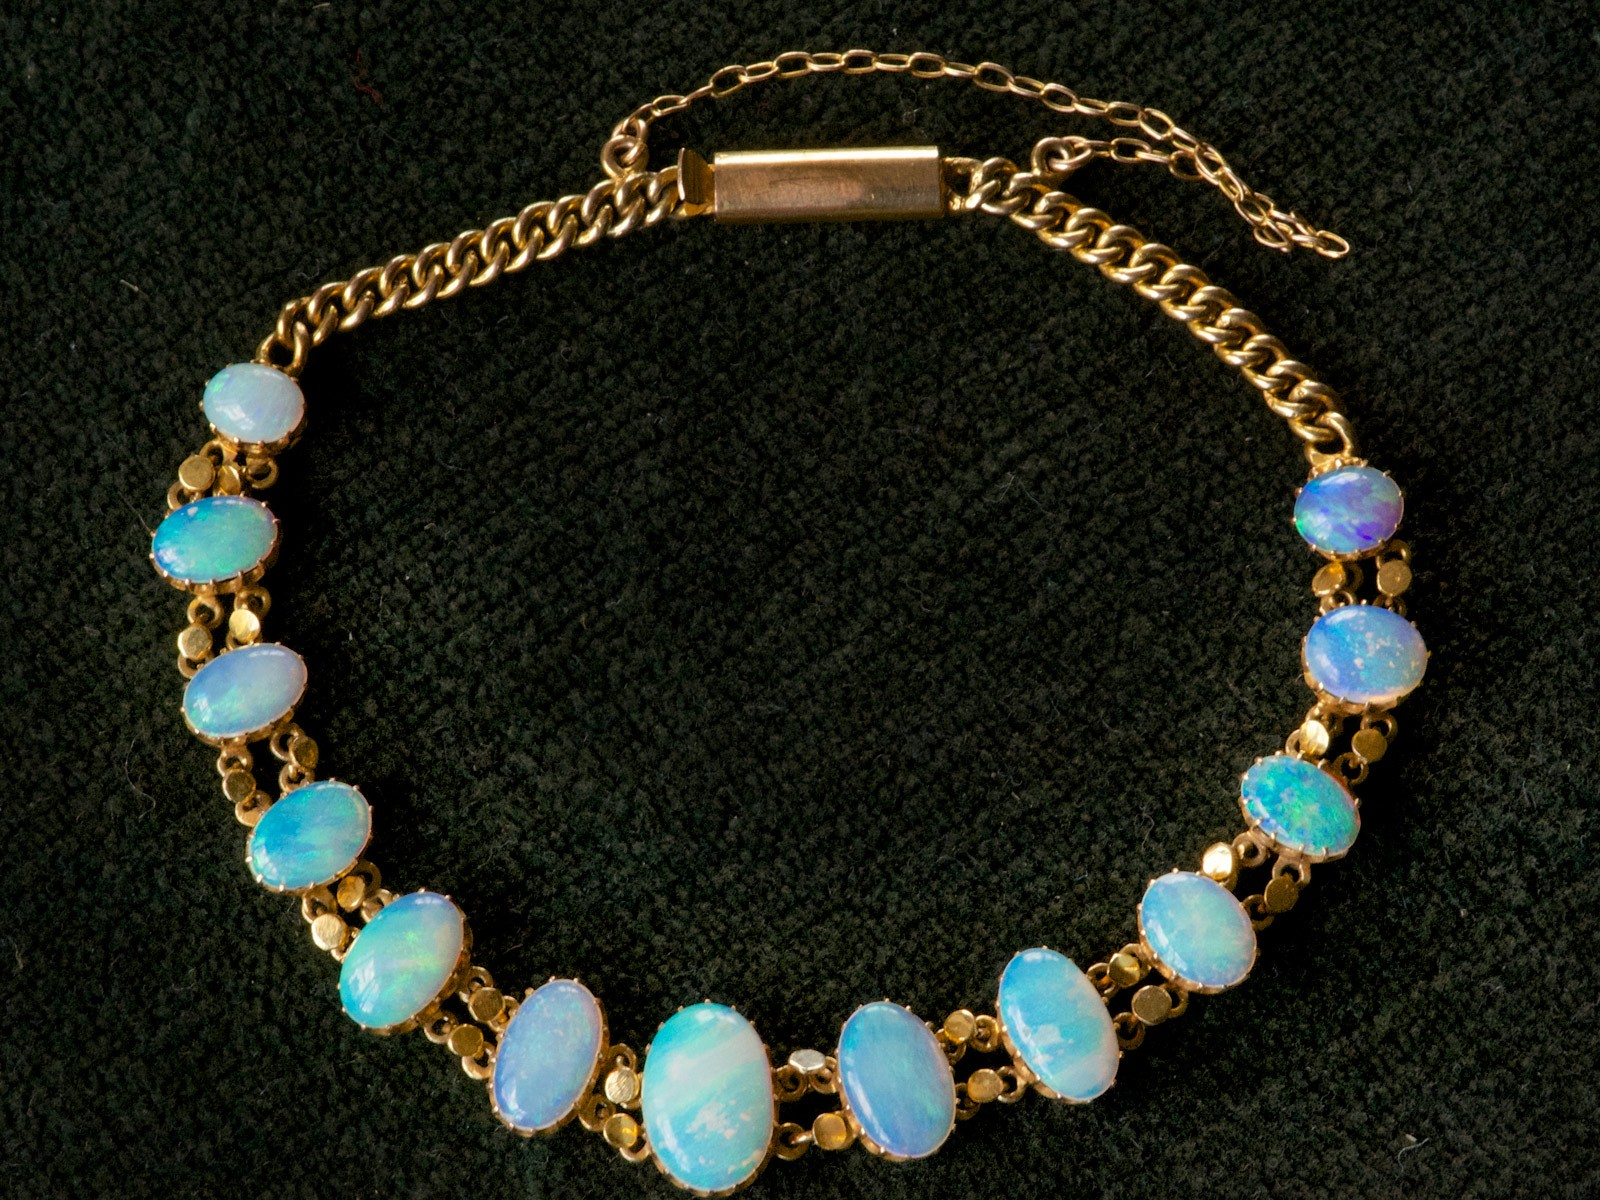 What to look for when buying an opal bracelet